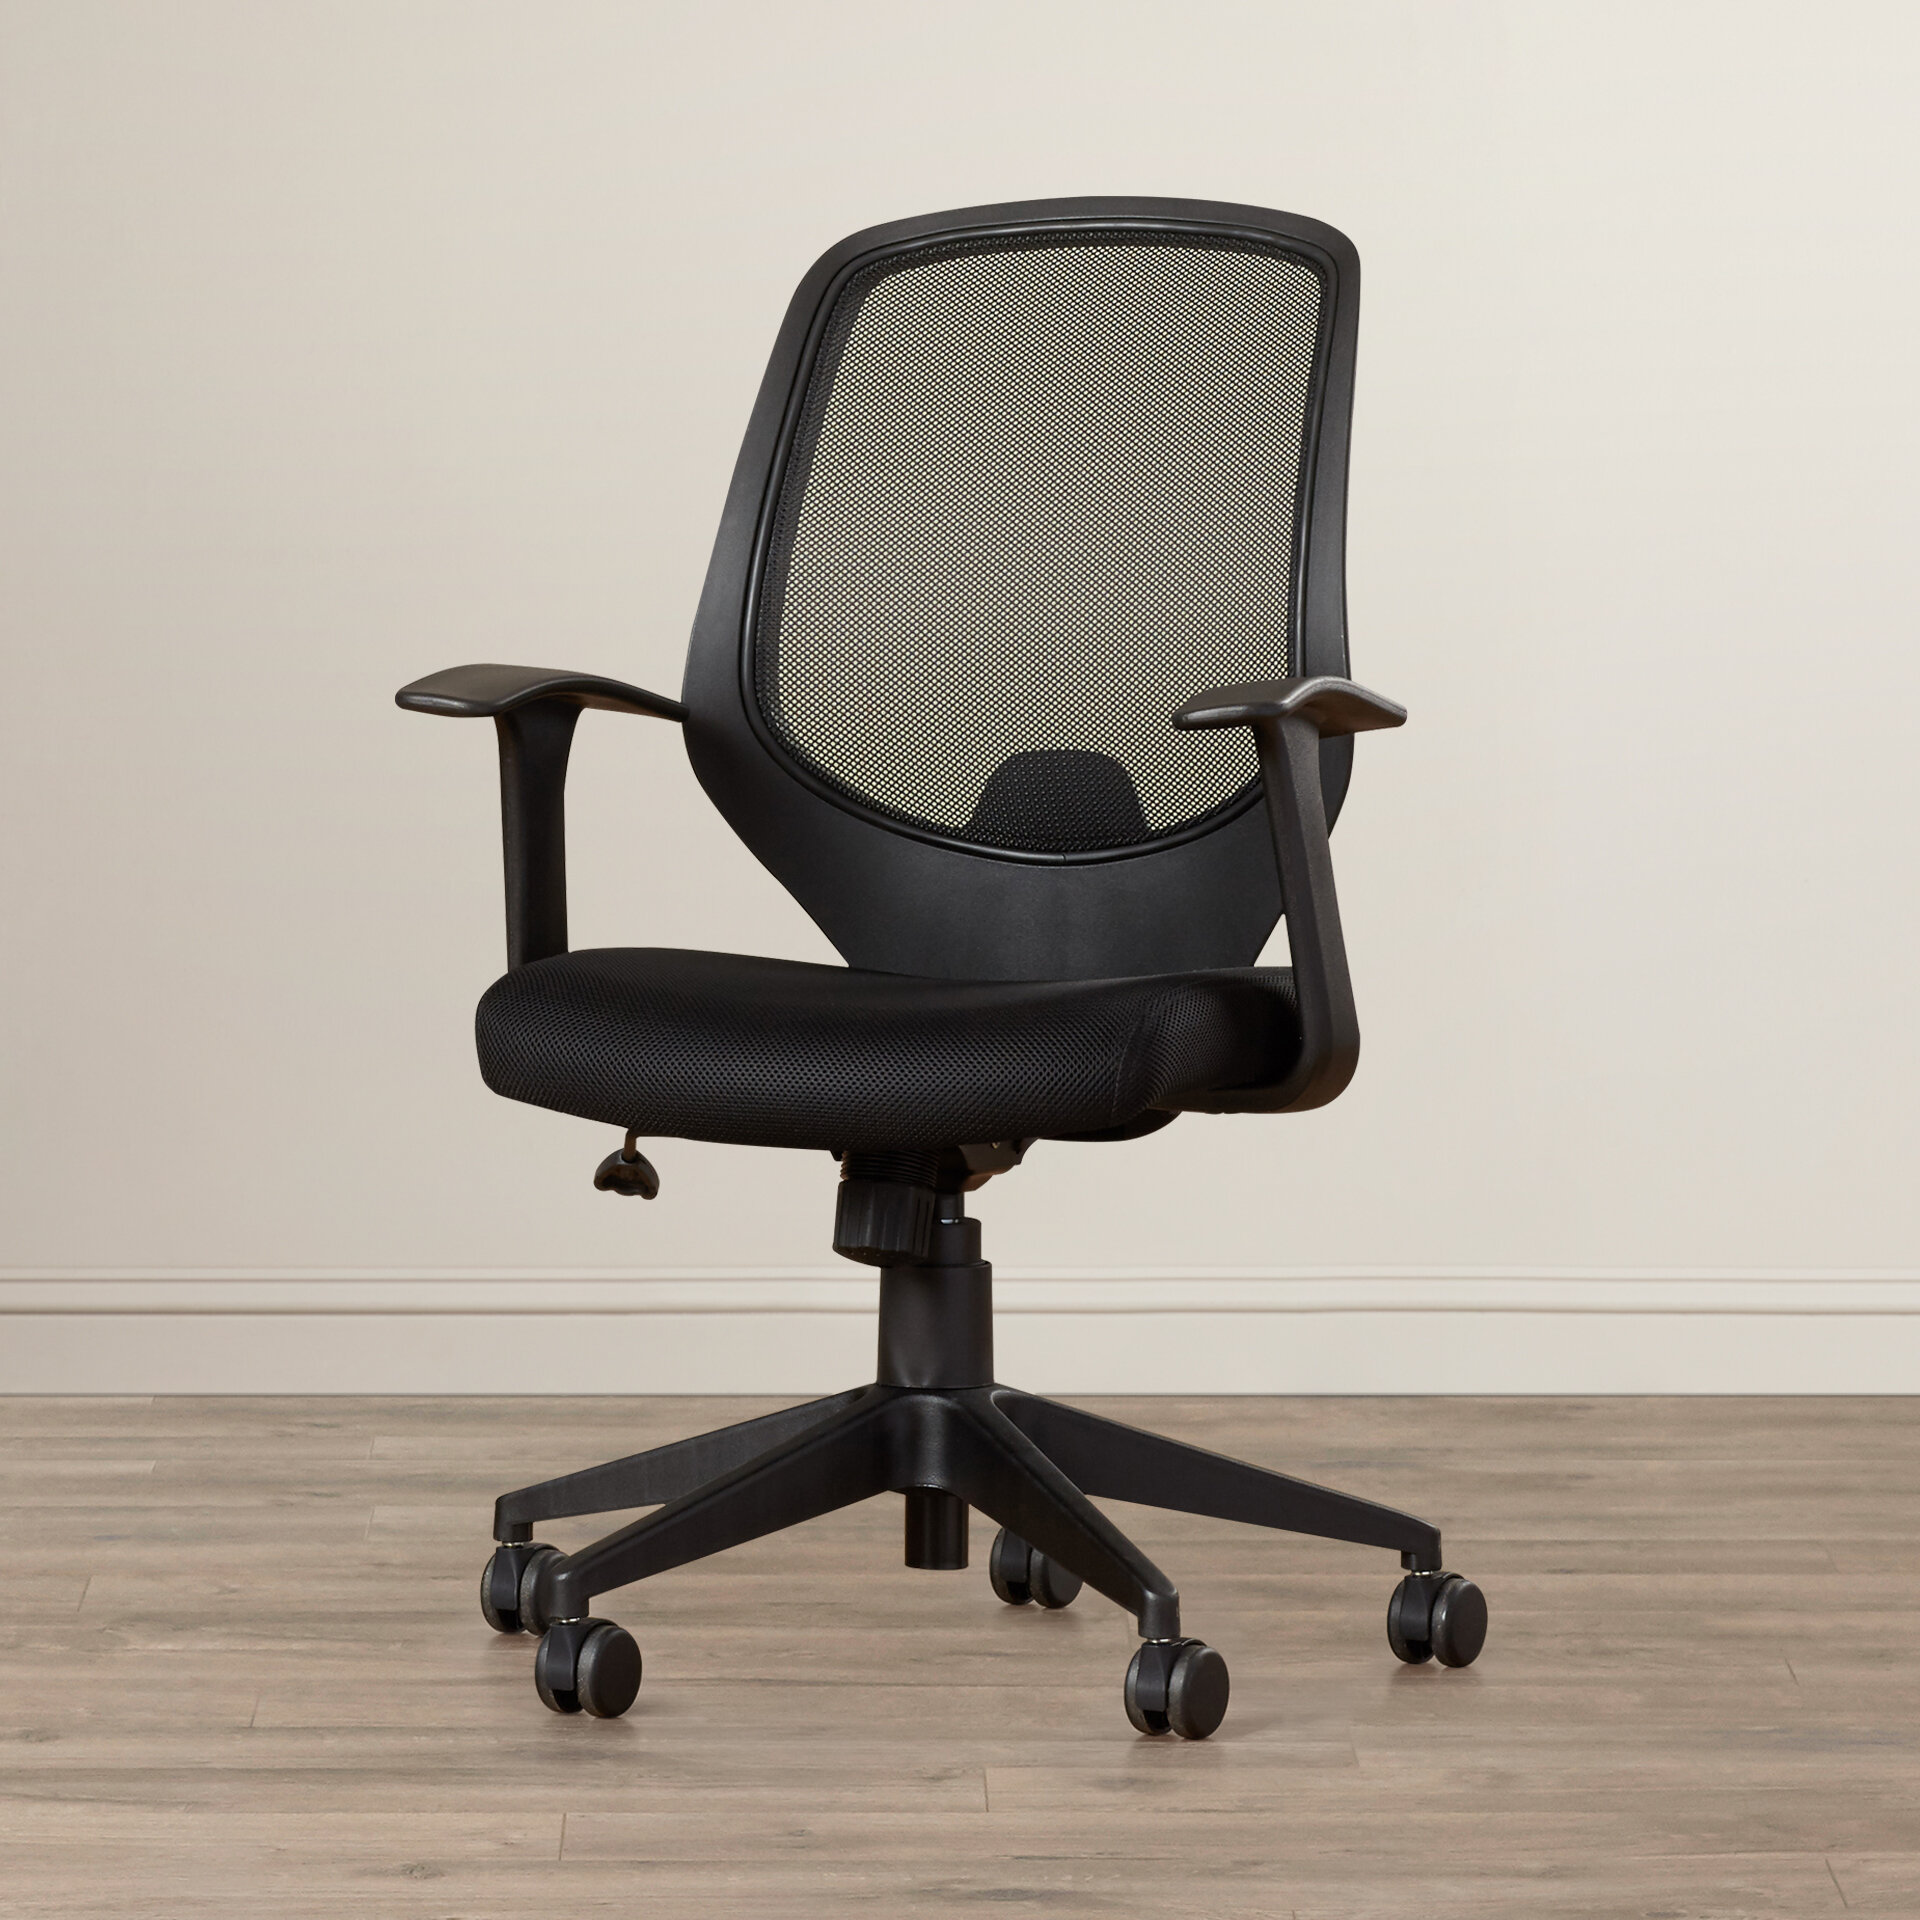 arms dynamo office black task operator chair with furniture featured mesh portland chairs shop image ii